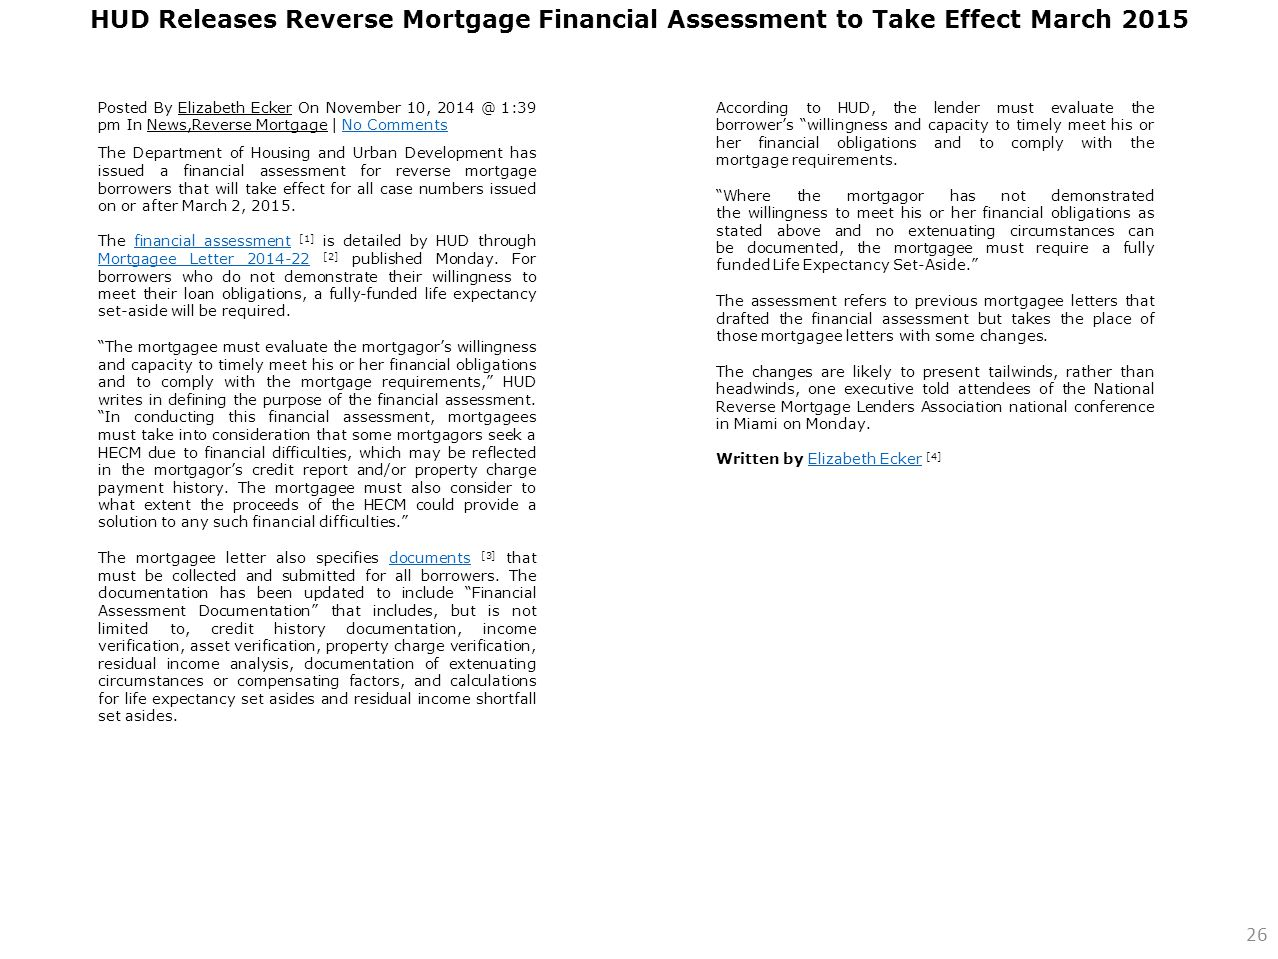 HUD Releases Reverse Mortgage Financial Assessment to Take Effect March 2015